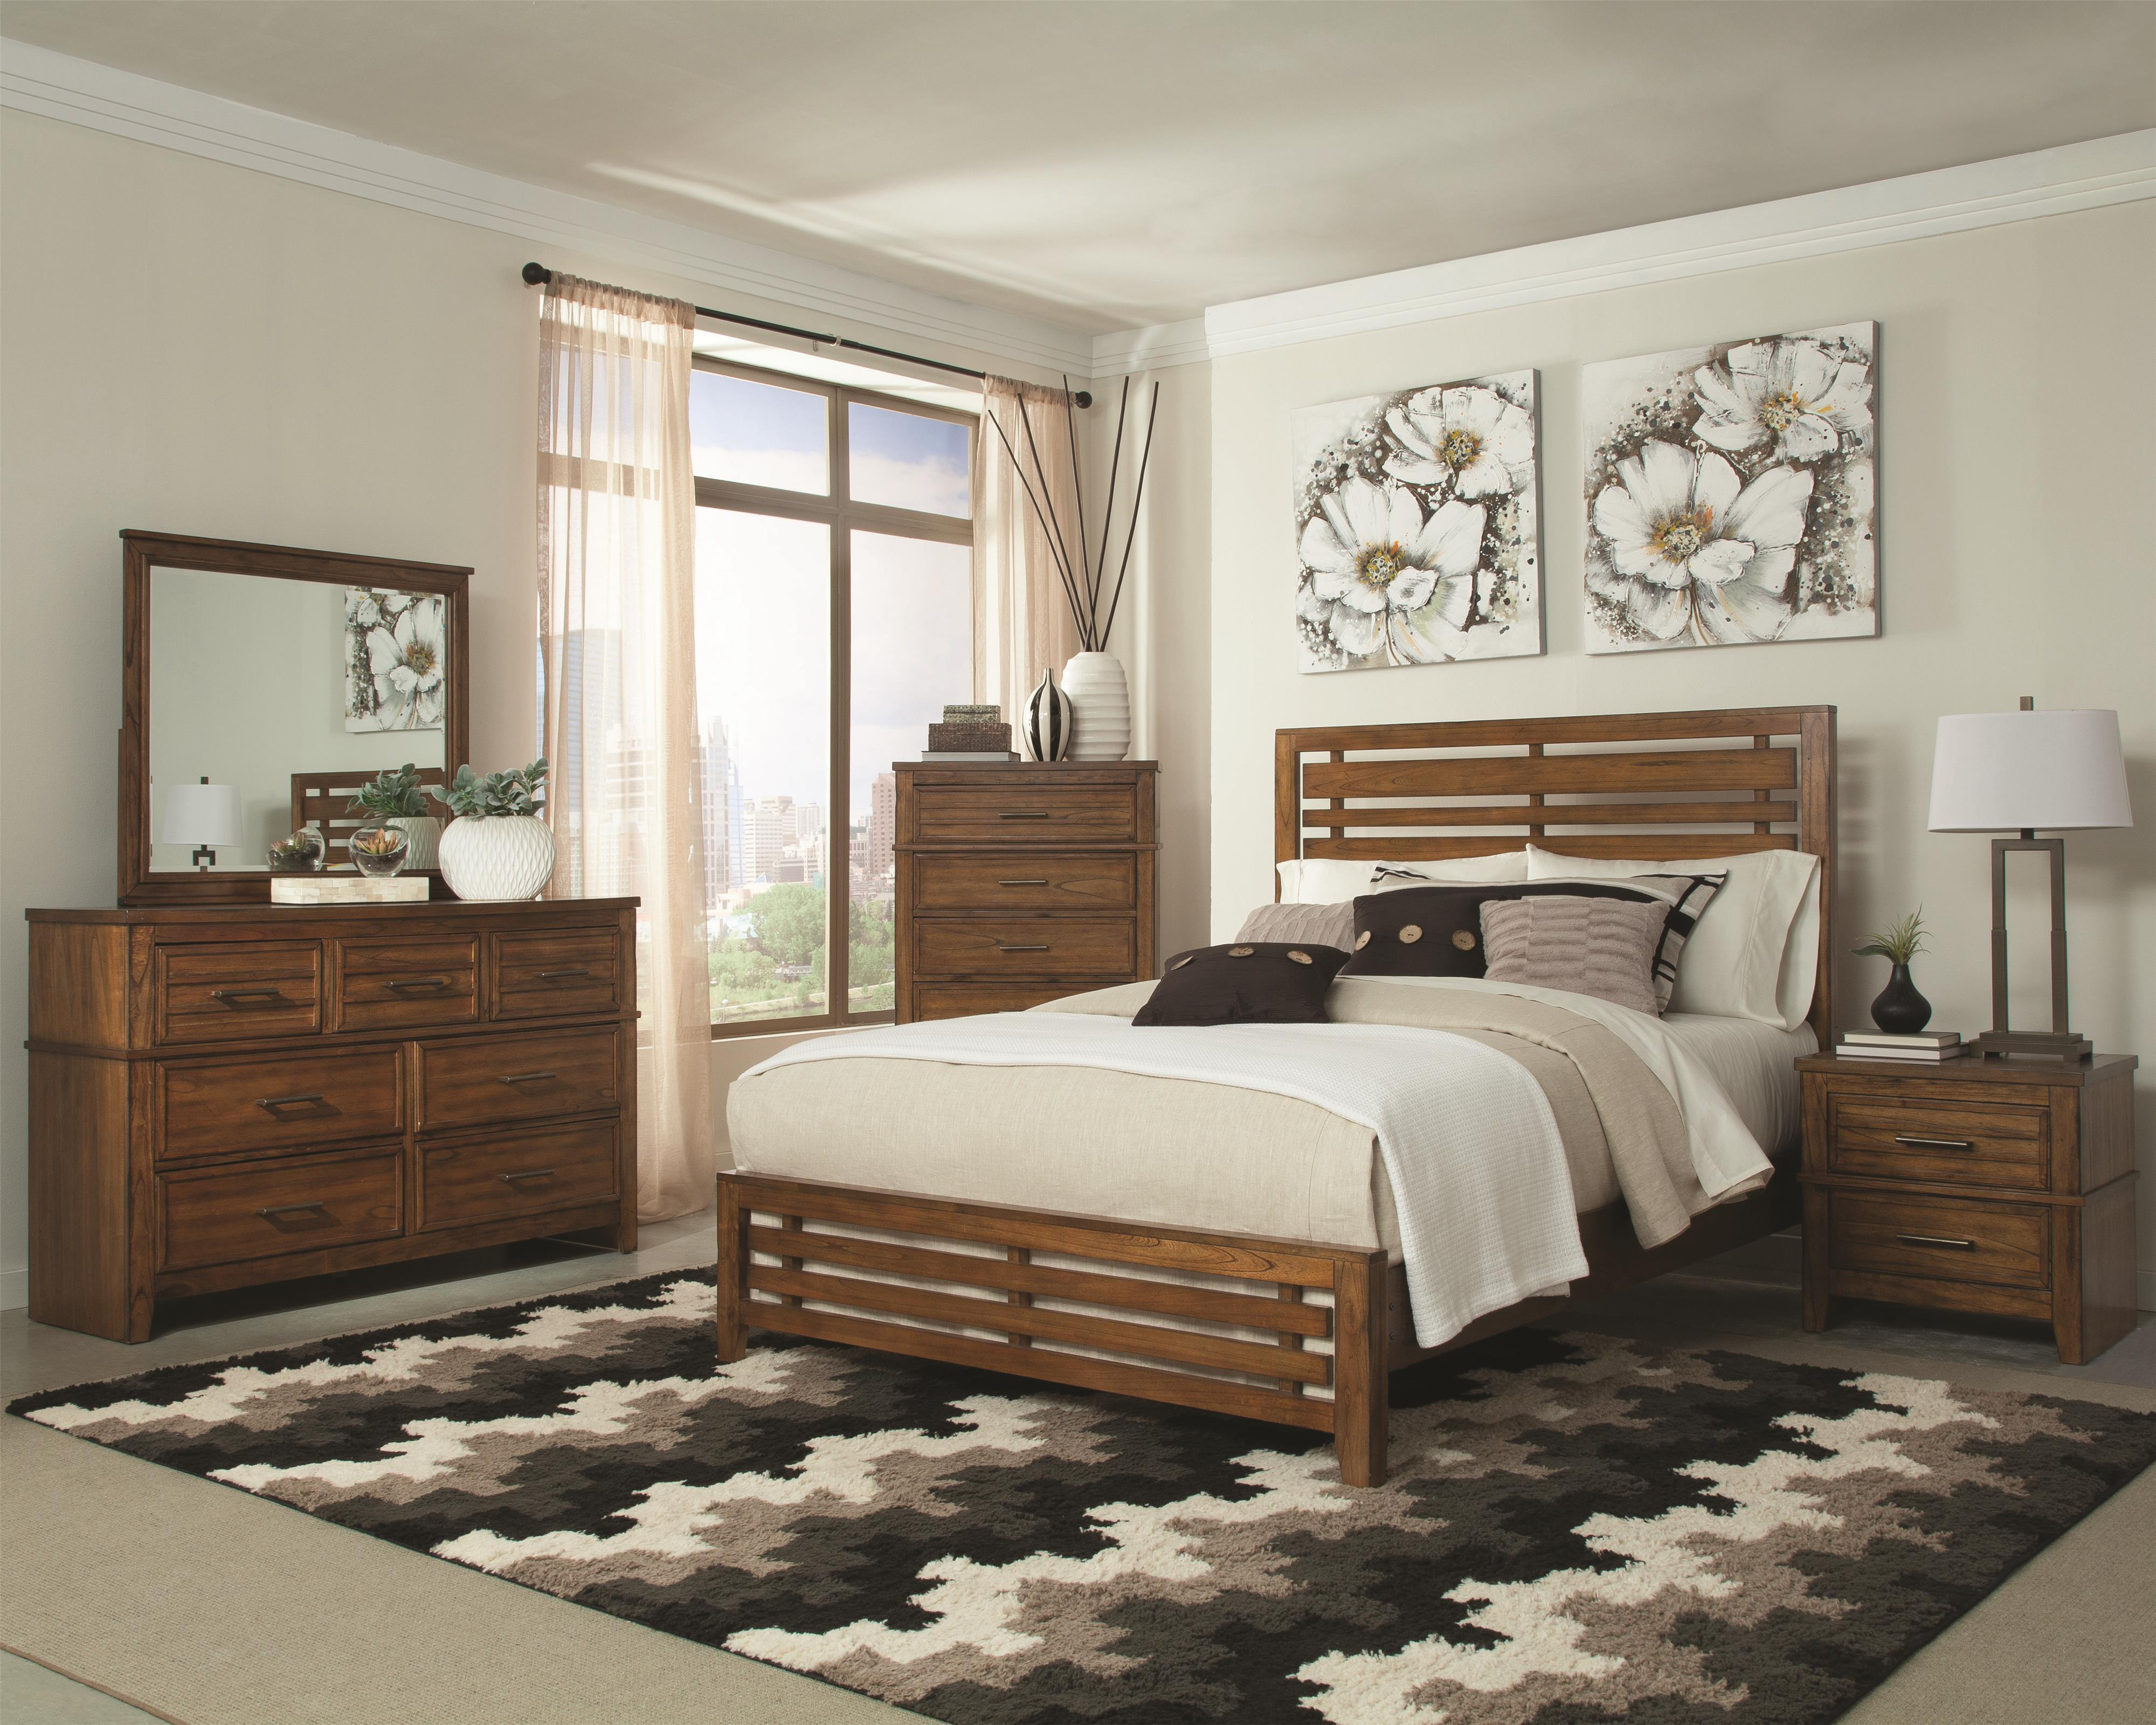 Coaster Cupertino Queen Bedroom Group - Item Number: 2040 Q Bedroom Group